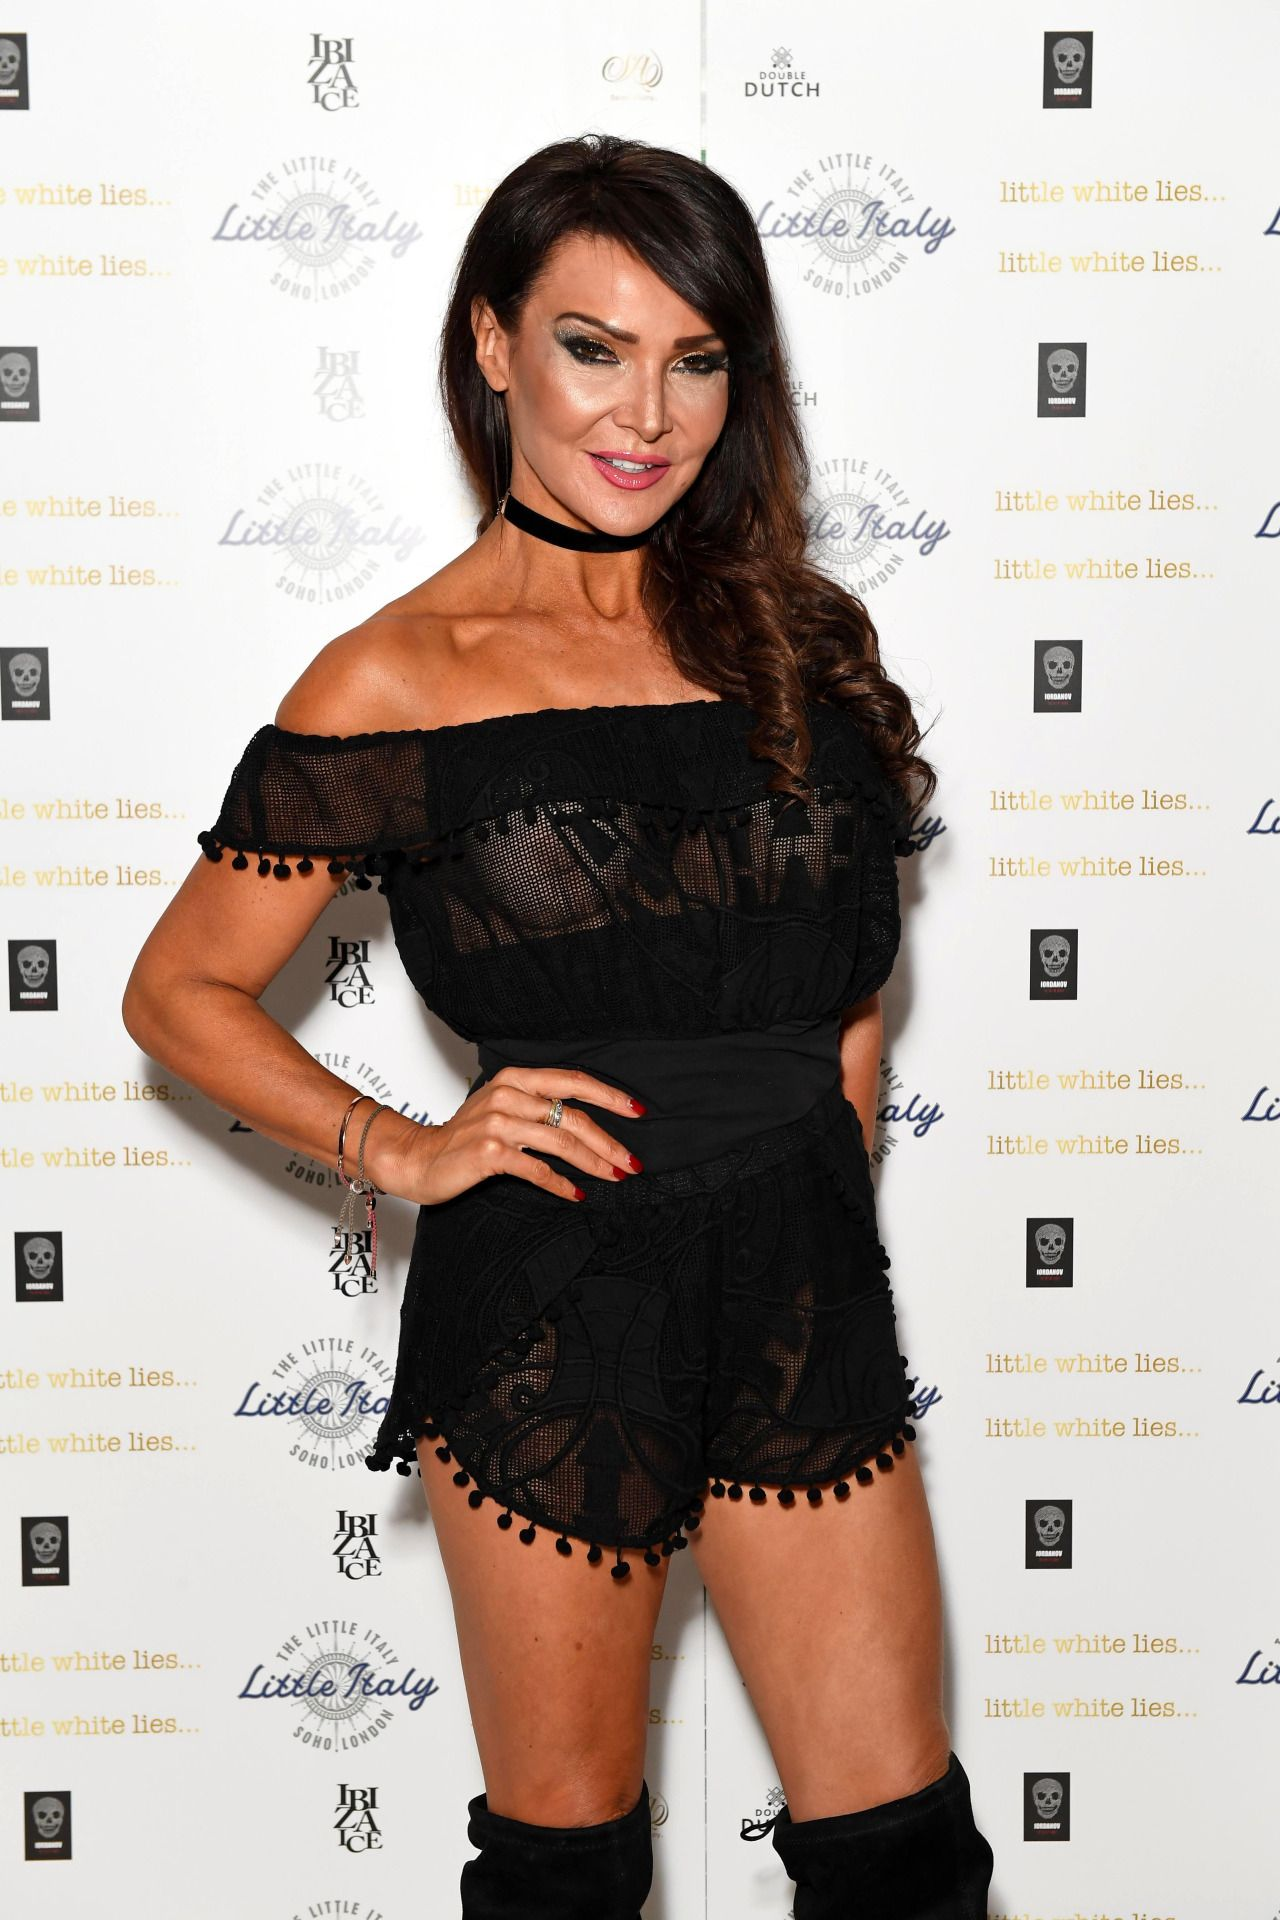 Lizzie cundy see through 2 naked (28 photos), Twitter Celebrity photo